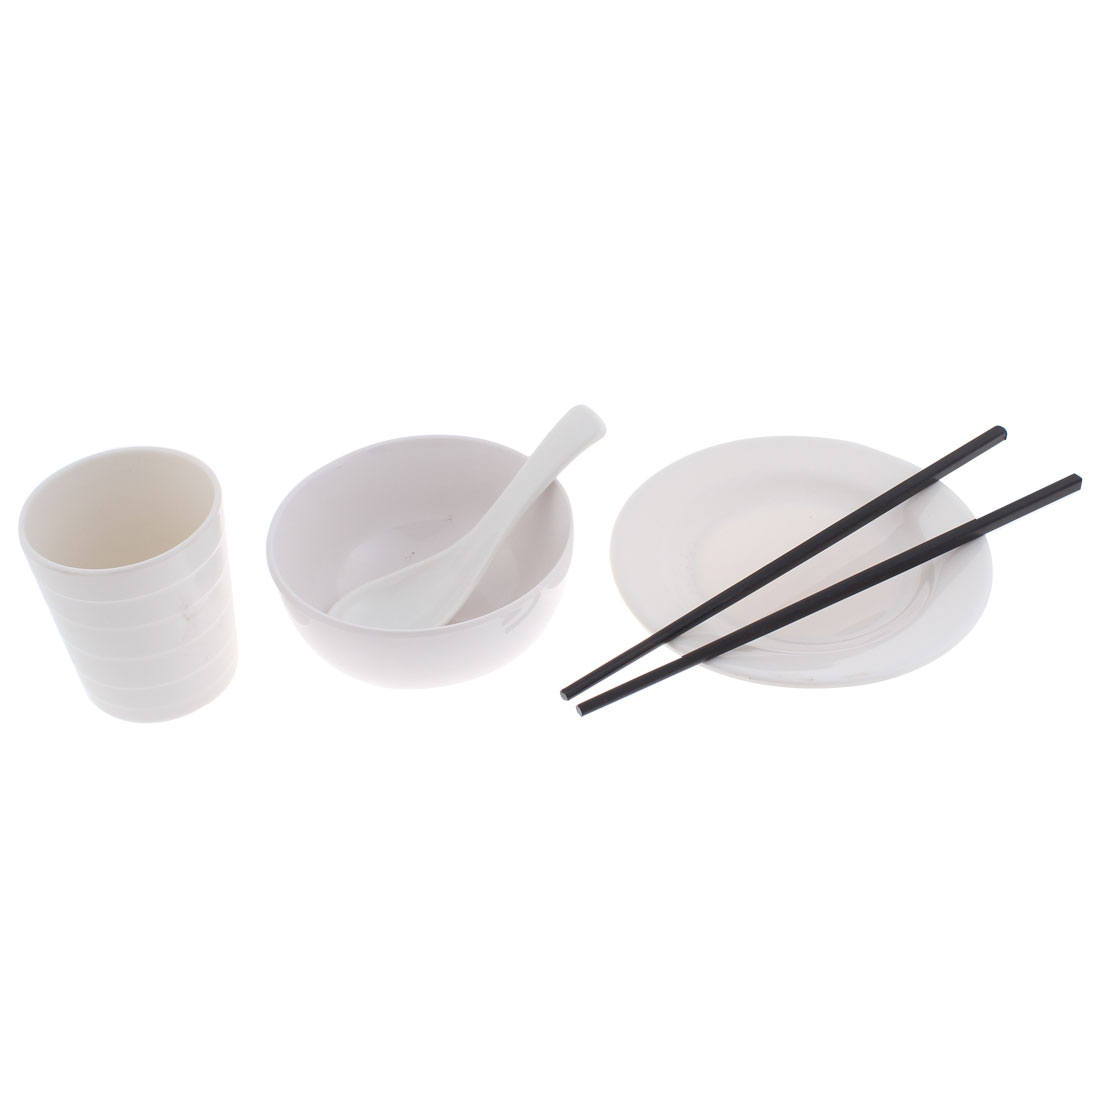 Restaurant Table Plastic Spoon Chopsticks Cup Dish Rice Bowl 5 in 1